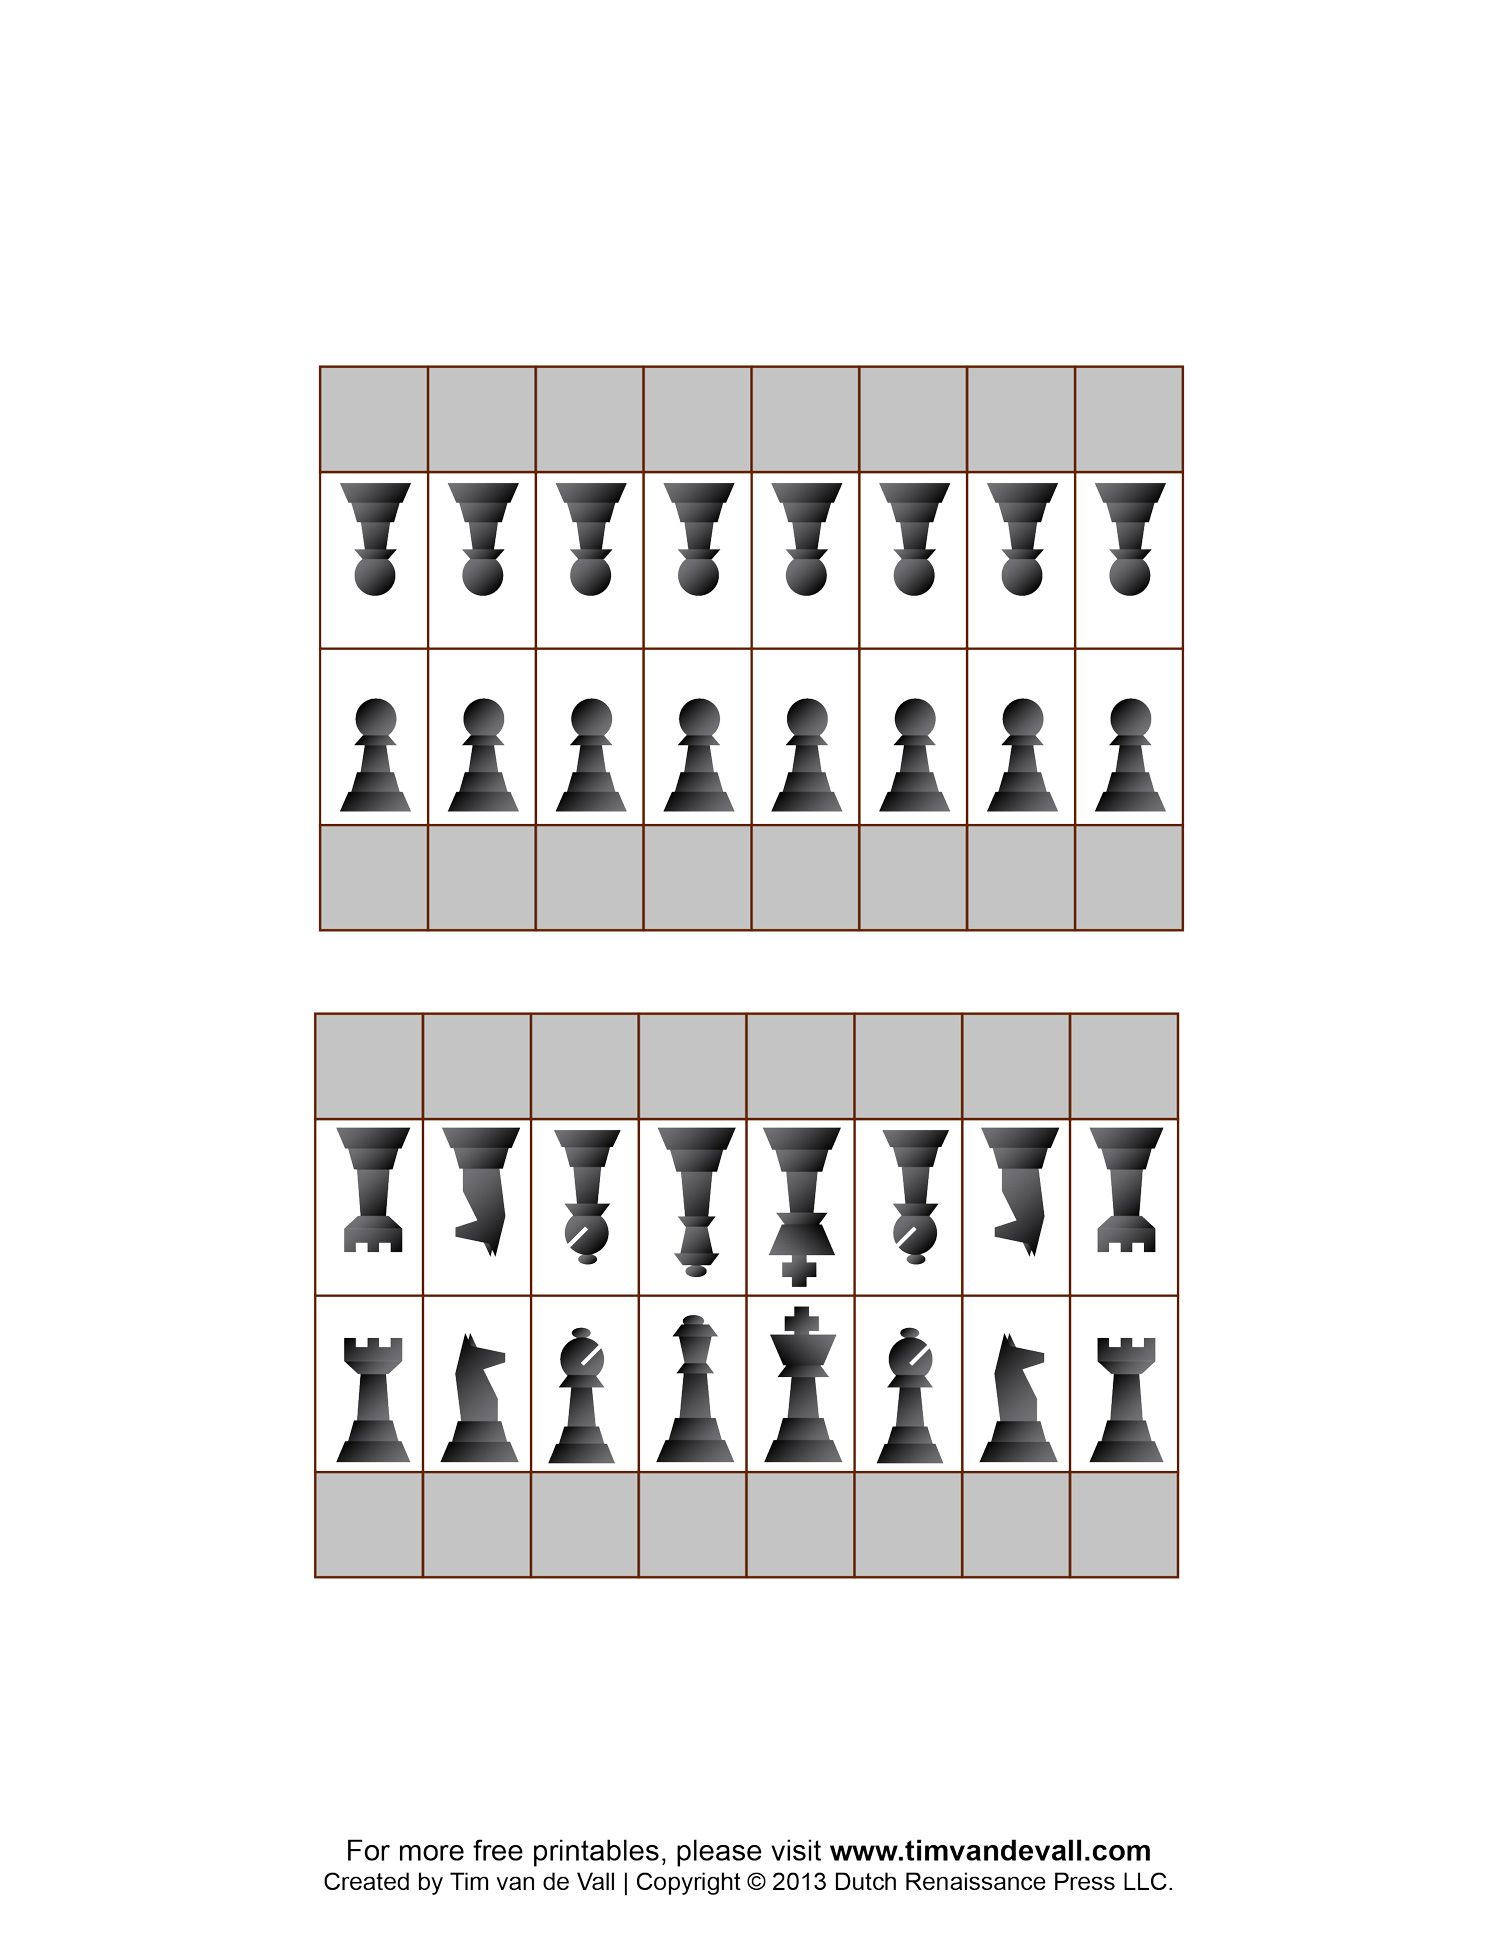 image regarding Printable Chess Pieces identified as Free of charge Printable Chess Parts. In the direction of employ the service of for flashcards: standing